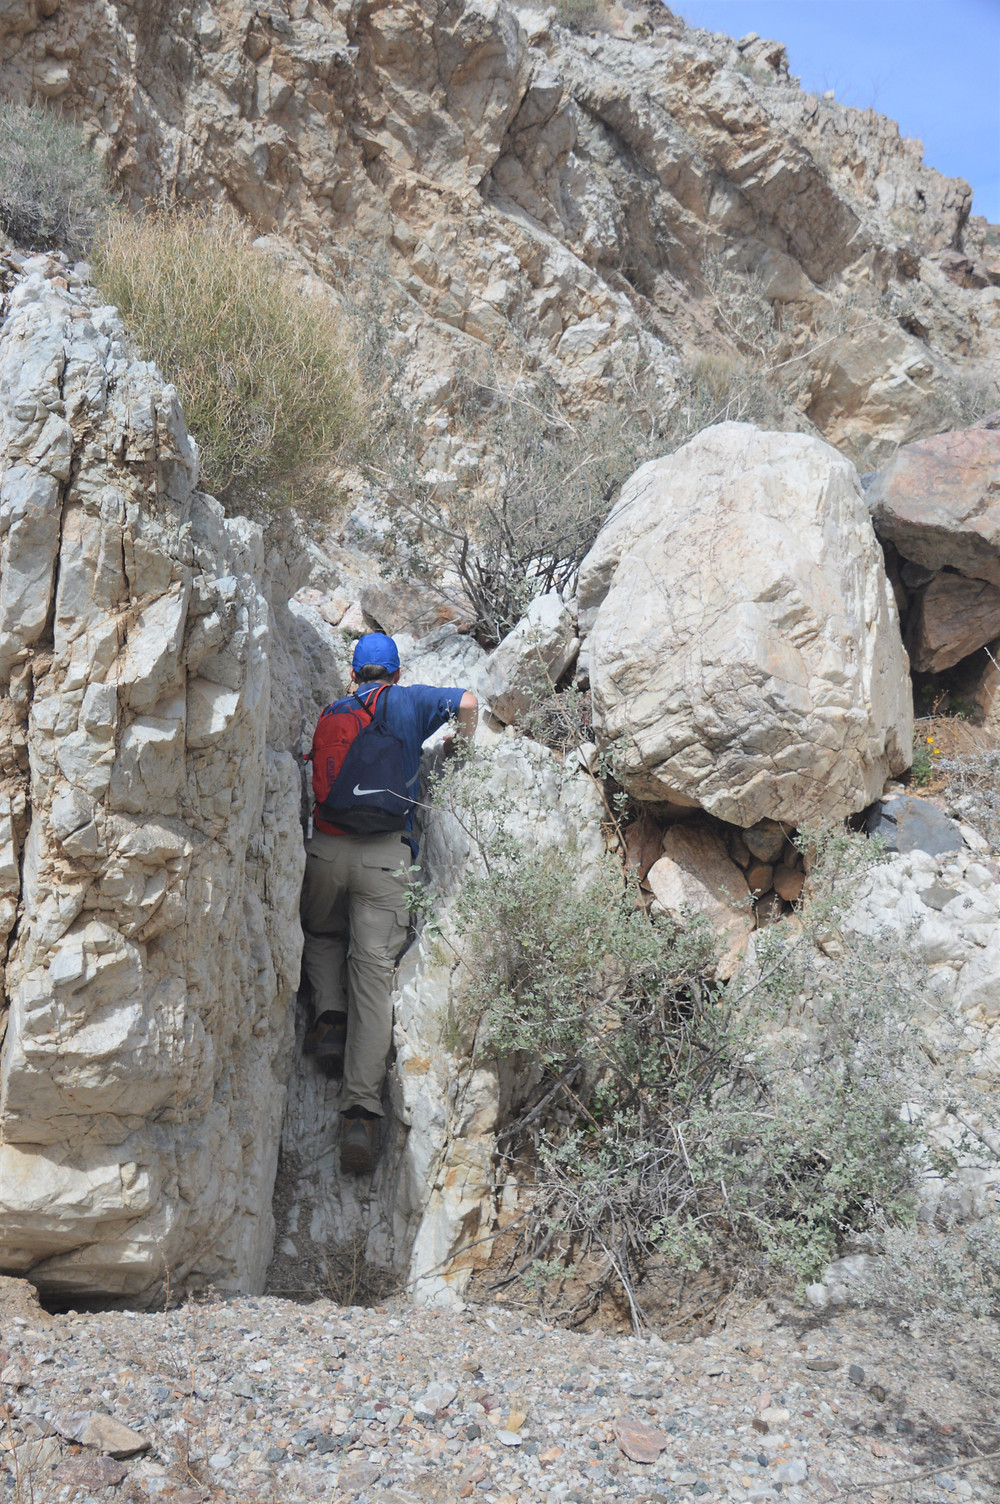 Climbing through narrow opening in rock on hike to Pinto Mountain summit in Joshua Tree National Park